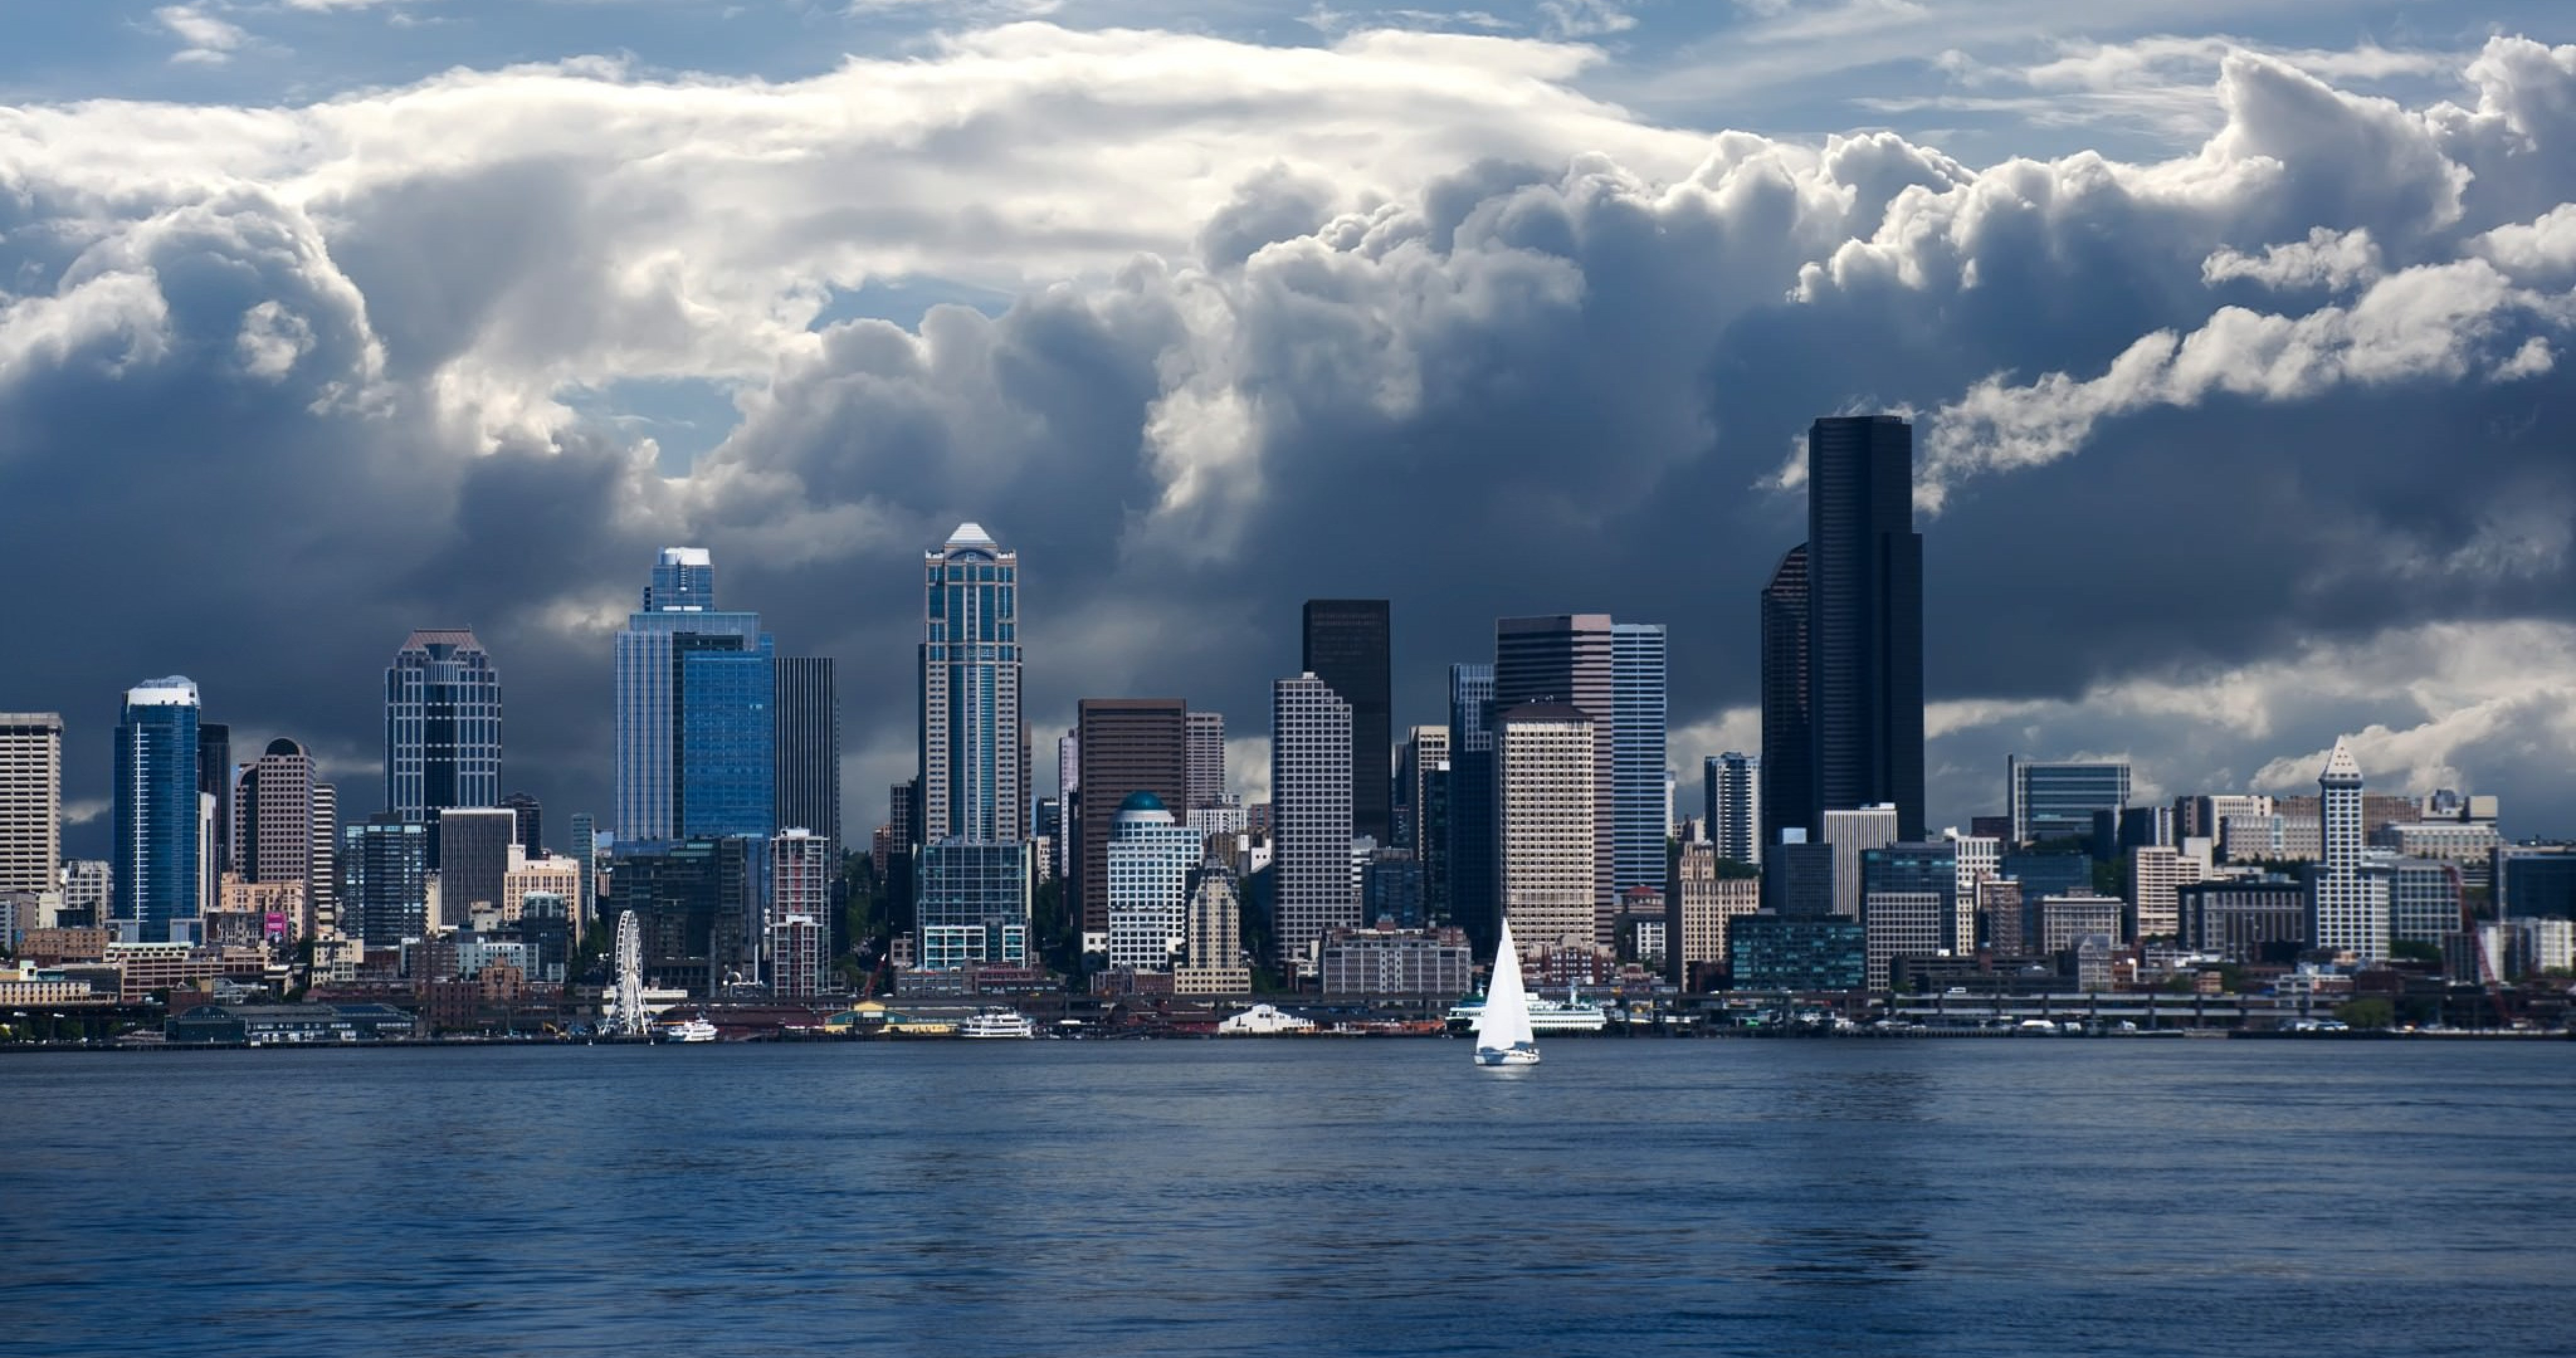 Seattle Skyline 4k Ultra Hd Wallpaper High Quality Walls